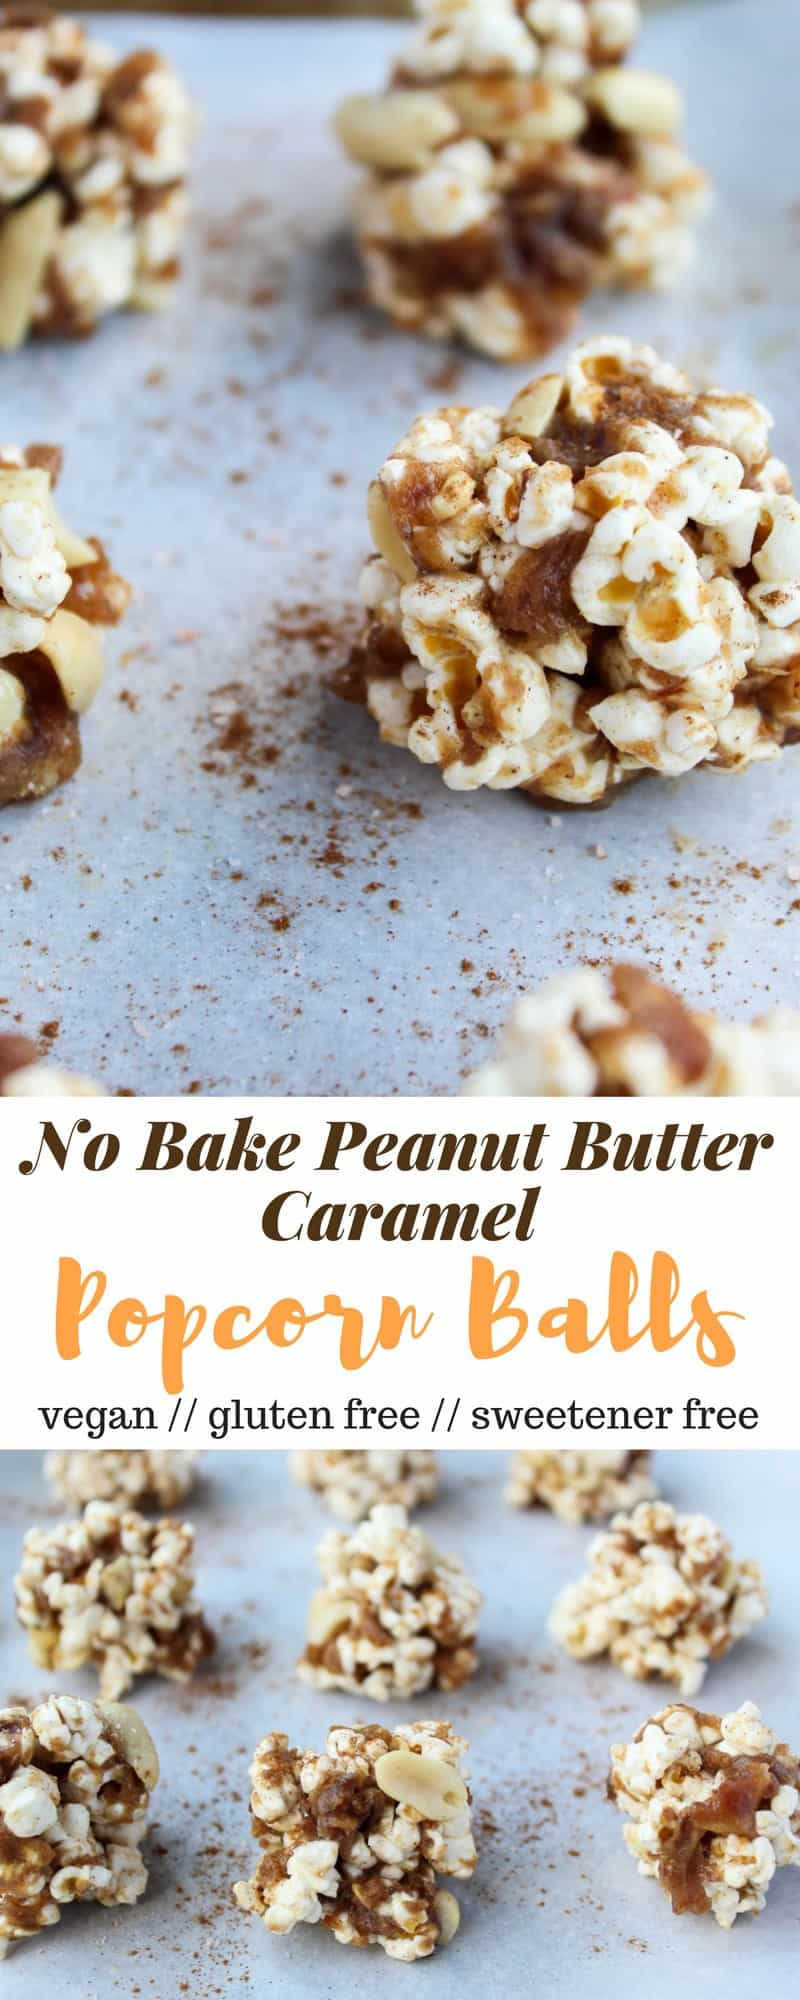 No bake and 30 minutes to make, these Peanut Butter Caramel Popcorn Balls are the perfect holiday snack. No added sweetener, vegan, and gluten free! - Eat the Gains